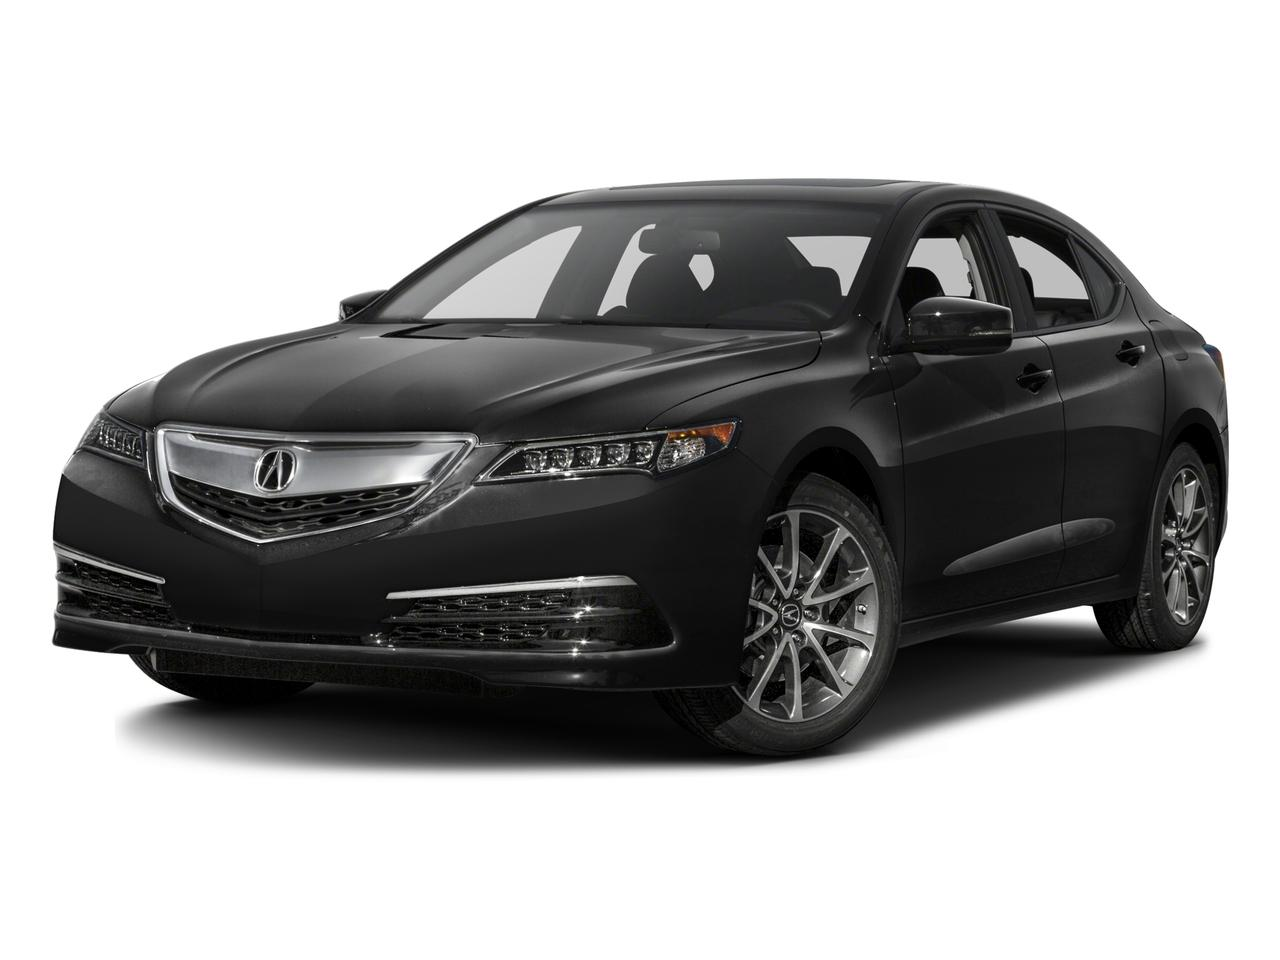 2016 Acura TLX Vehicle Photo in Friendswood, TX 77546